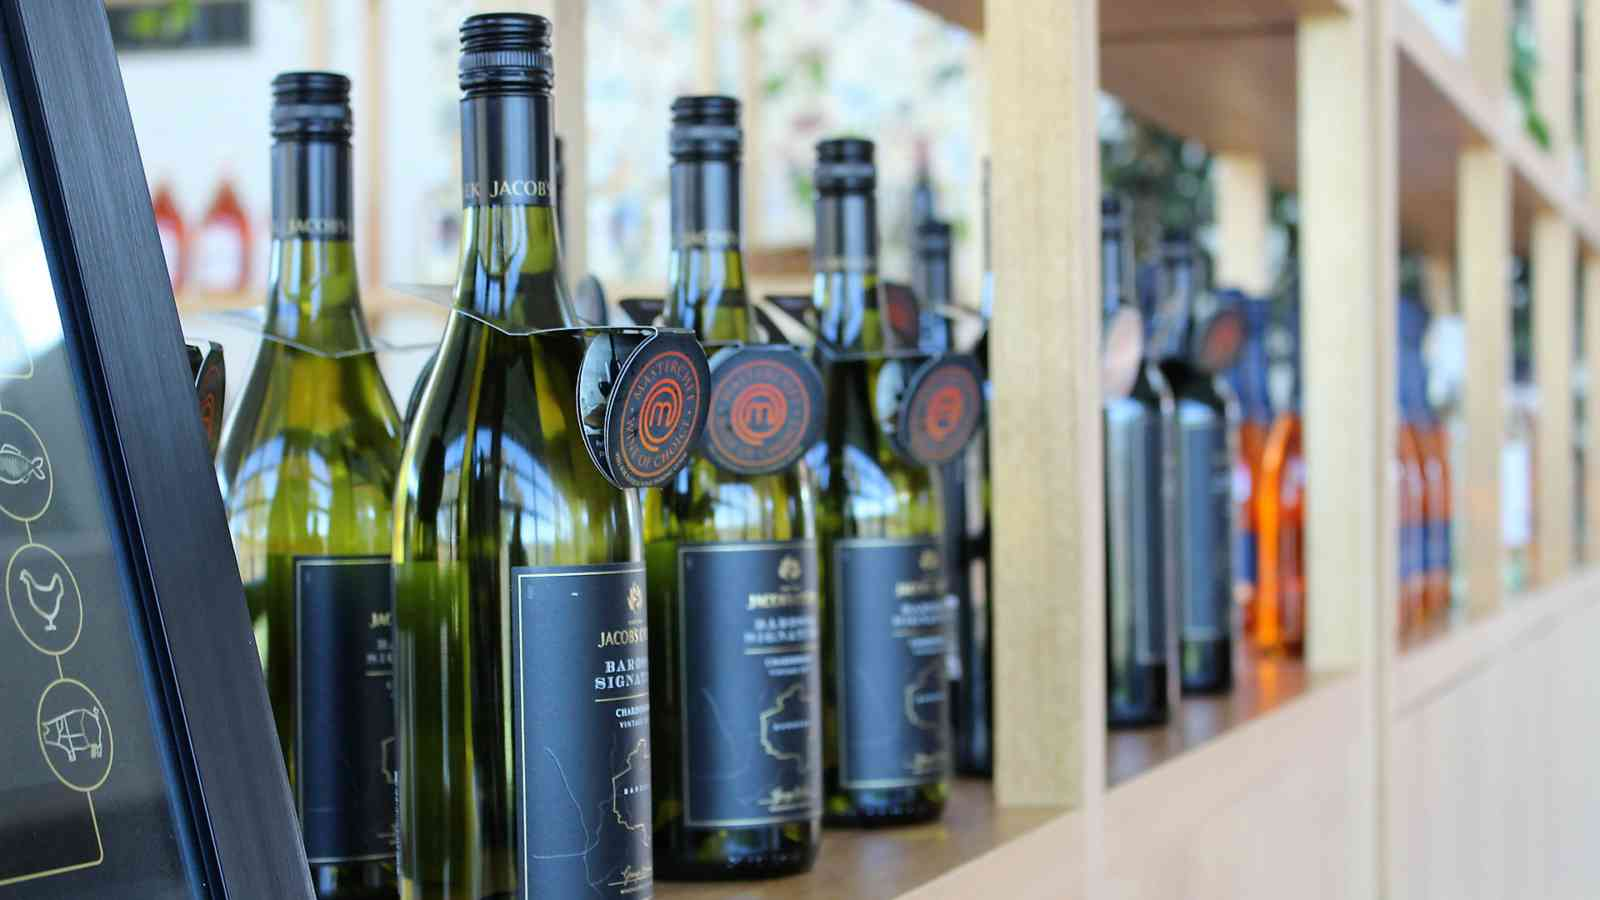 Barossa Wine Bottles